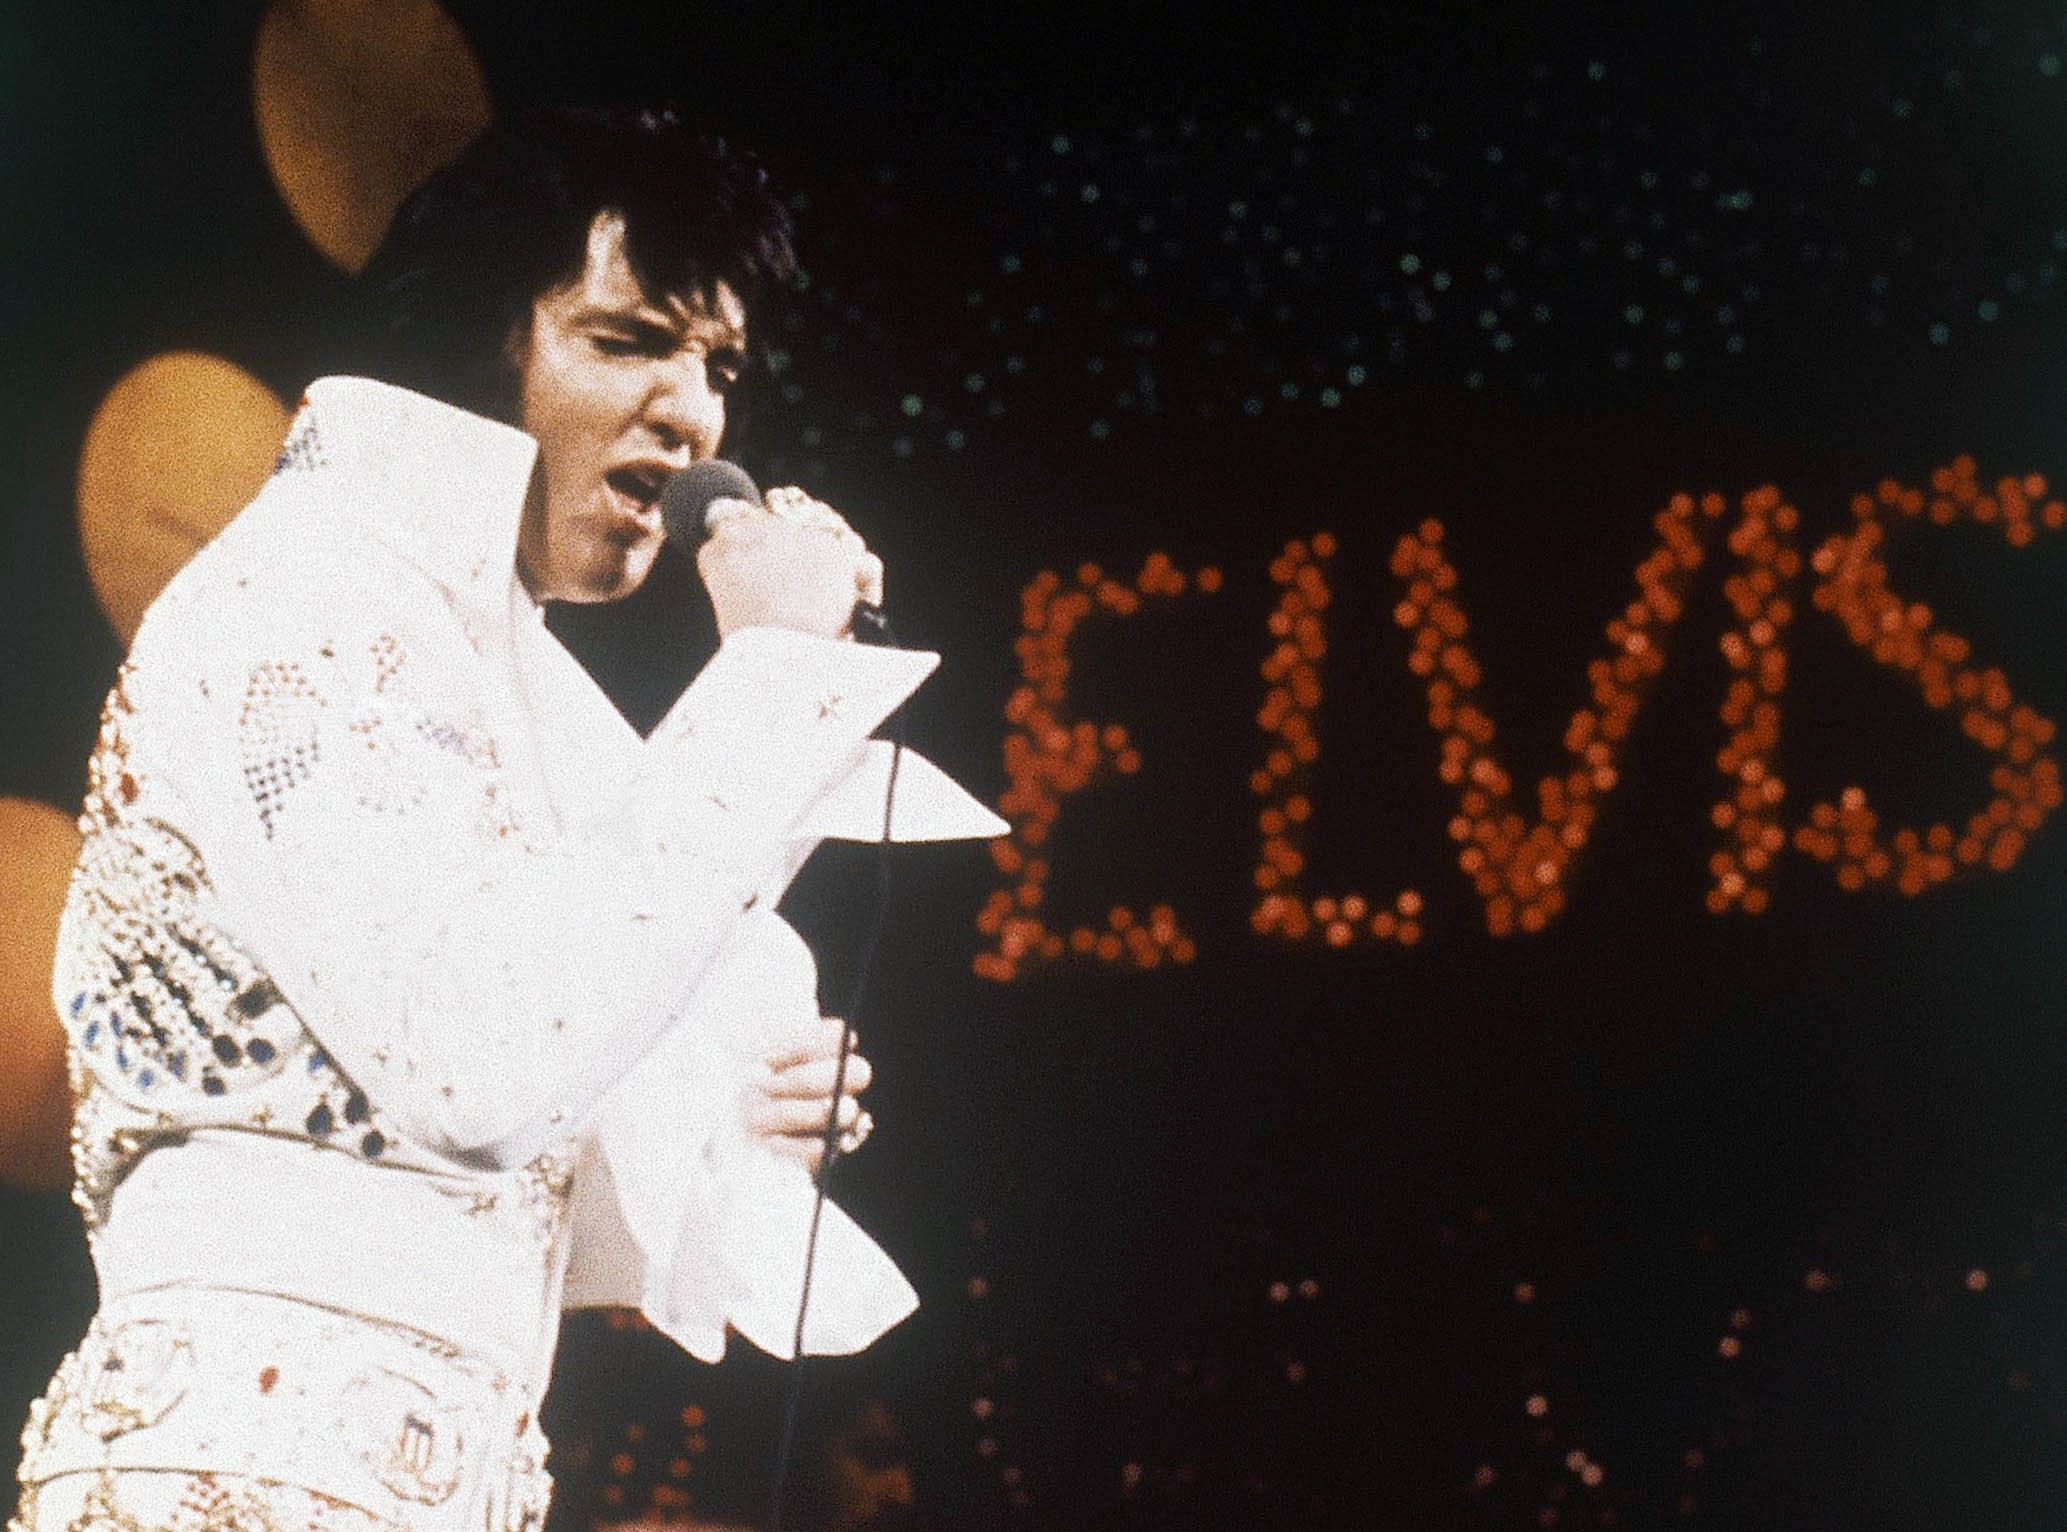 This 1972 file photo shows Elvis Presley, the King of Rock 'n' Roll, during a performance.